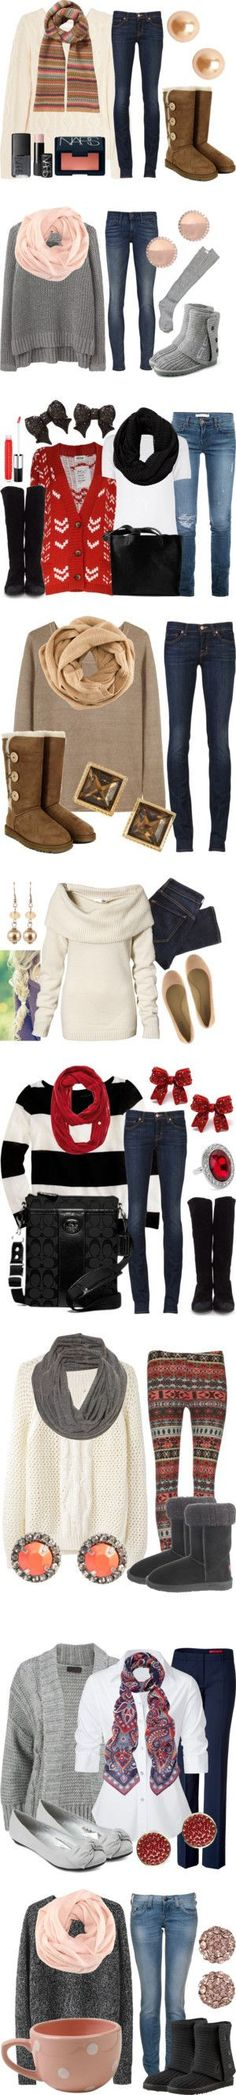 """""""Winter Wardrobe"""" -- now if I just had any of these pieces or suitable substitutes, I'd be stylin' . Mode Outfits, Casual Outfits, Fashion Outfits, Womens Fashion, Fashion Clothes, Sweater Outfits, Latest Fashion, Sweater Boots, Classy Outfits"""